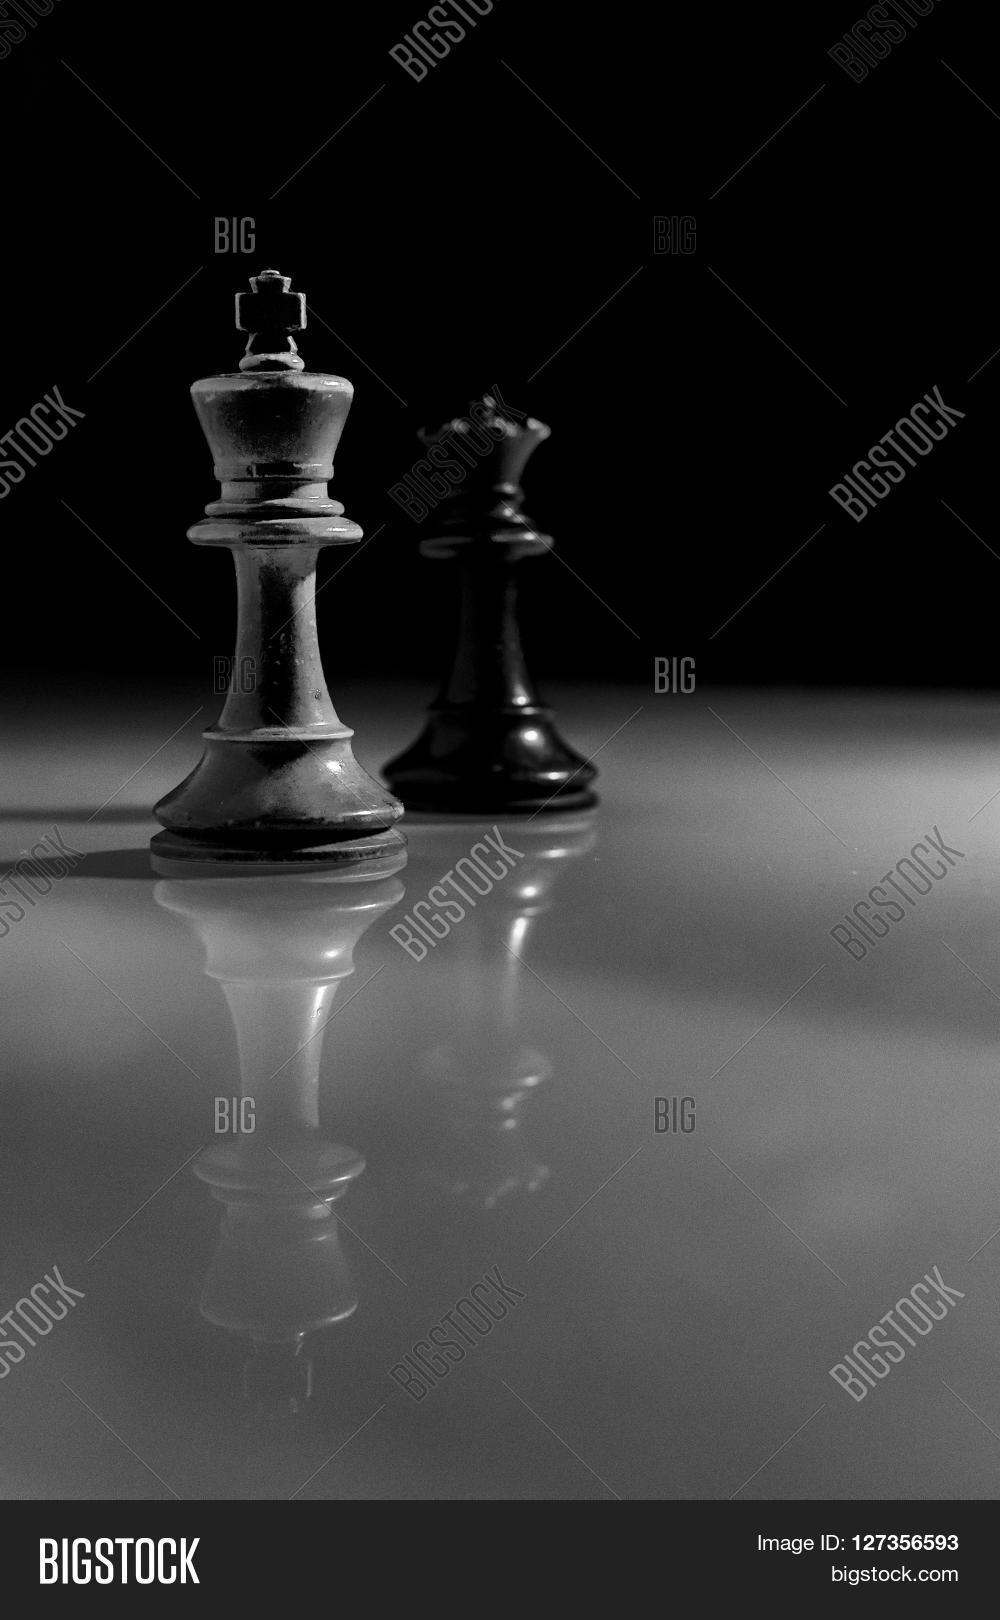 White king and black queen chess piece reflection